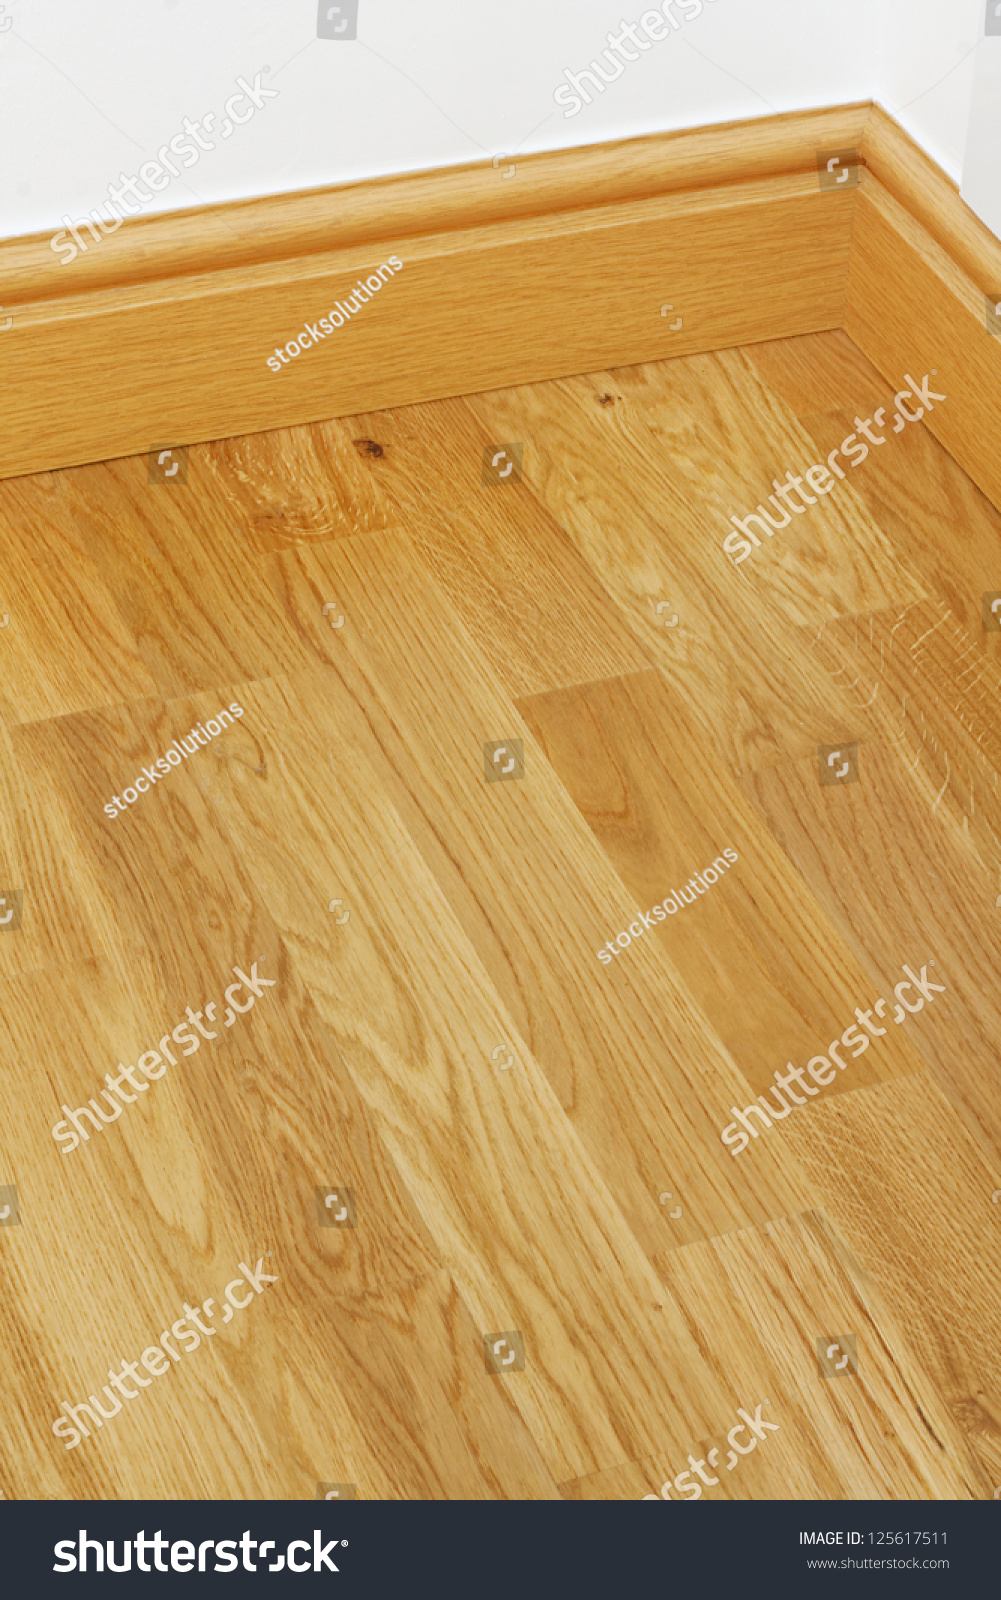 Mdf Wood Flooring : Close up showing some wood effect vinyl flooring and mdf